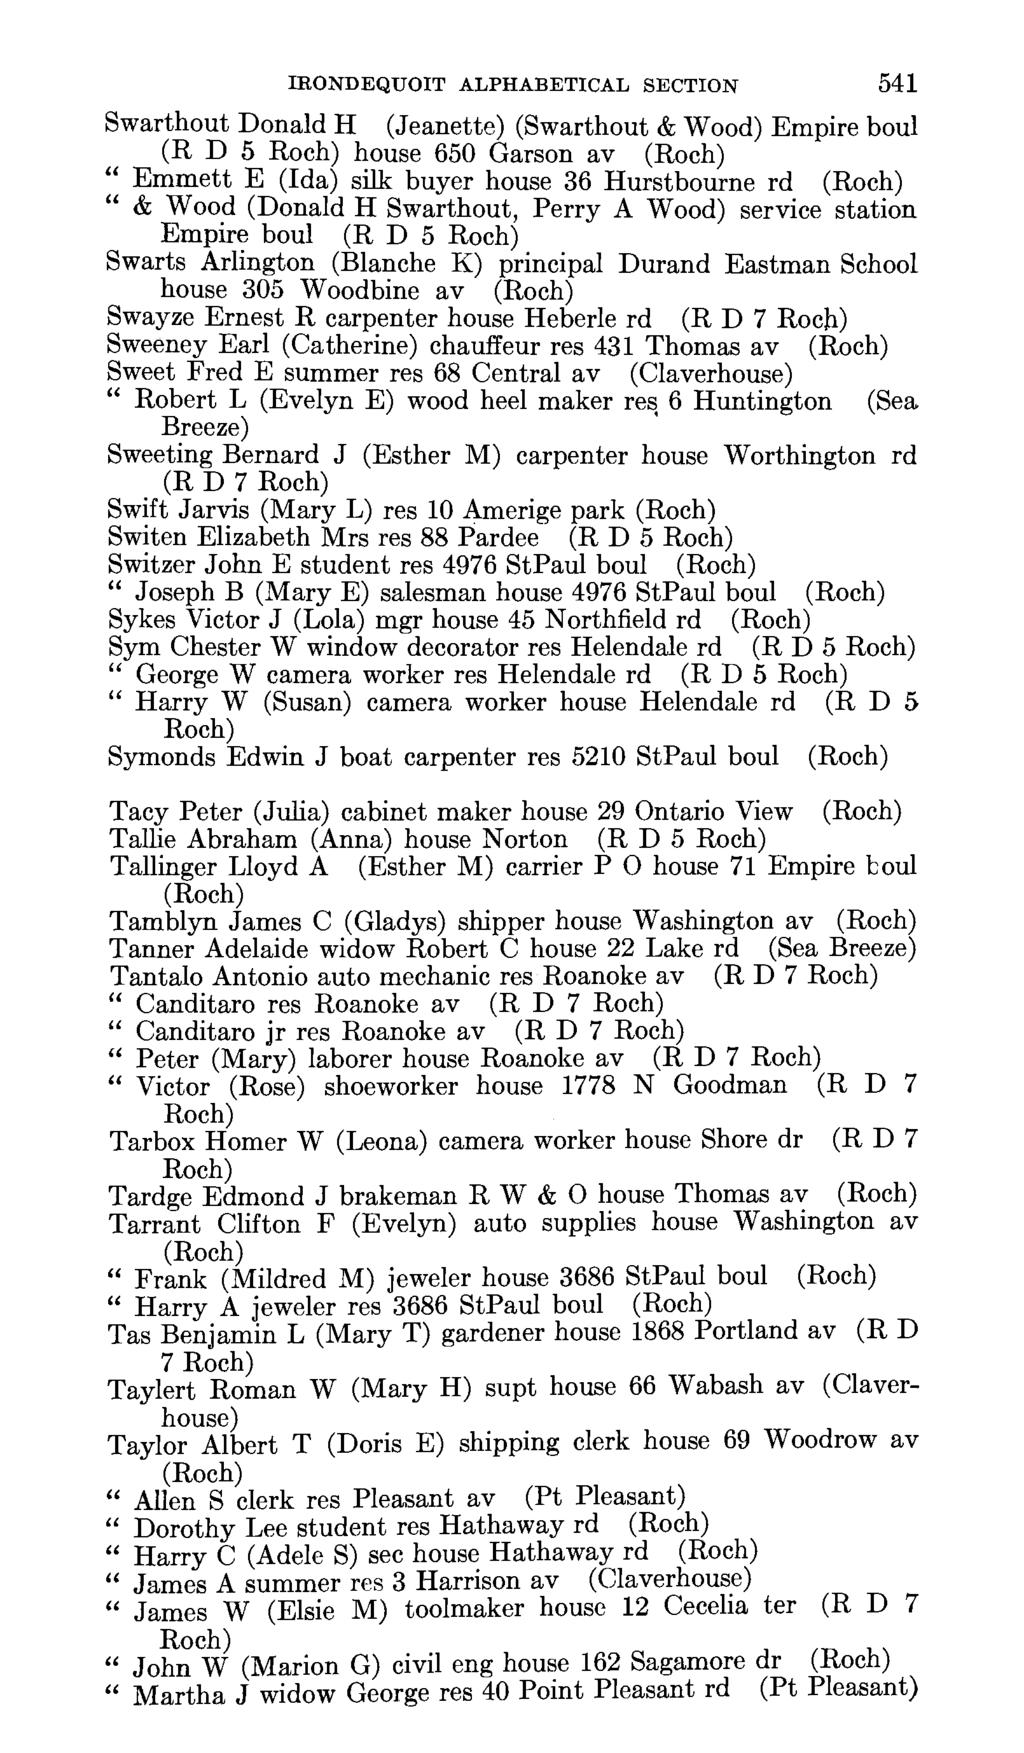 IRONDEQUOIT ALPHABETICAL SECTION 541 Swarthout Donald H (Jeanette) (Swarthout & Wood) Empire boul (R D 5 house 650 Garson av Emmett E (Ida) silk buyer house 36 Hurstbourne rd & Wood (Donald H